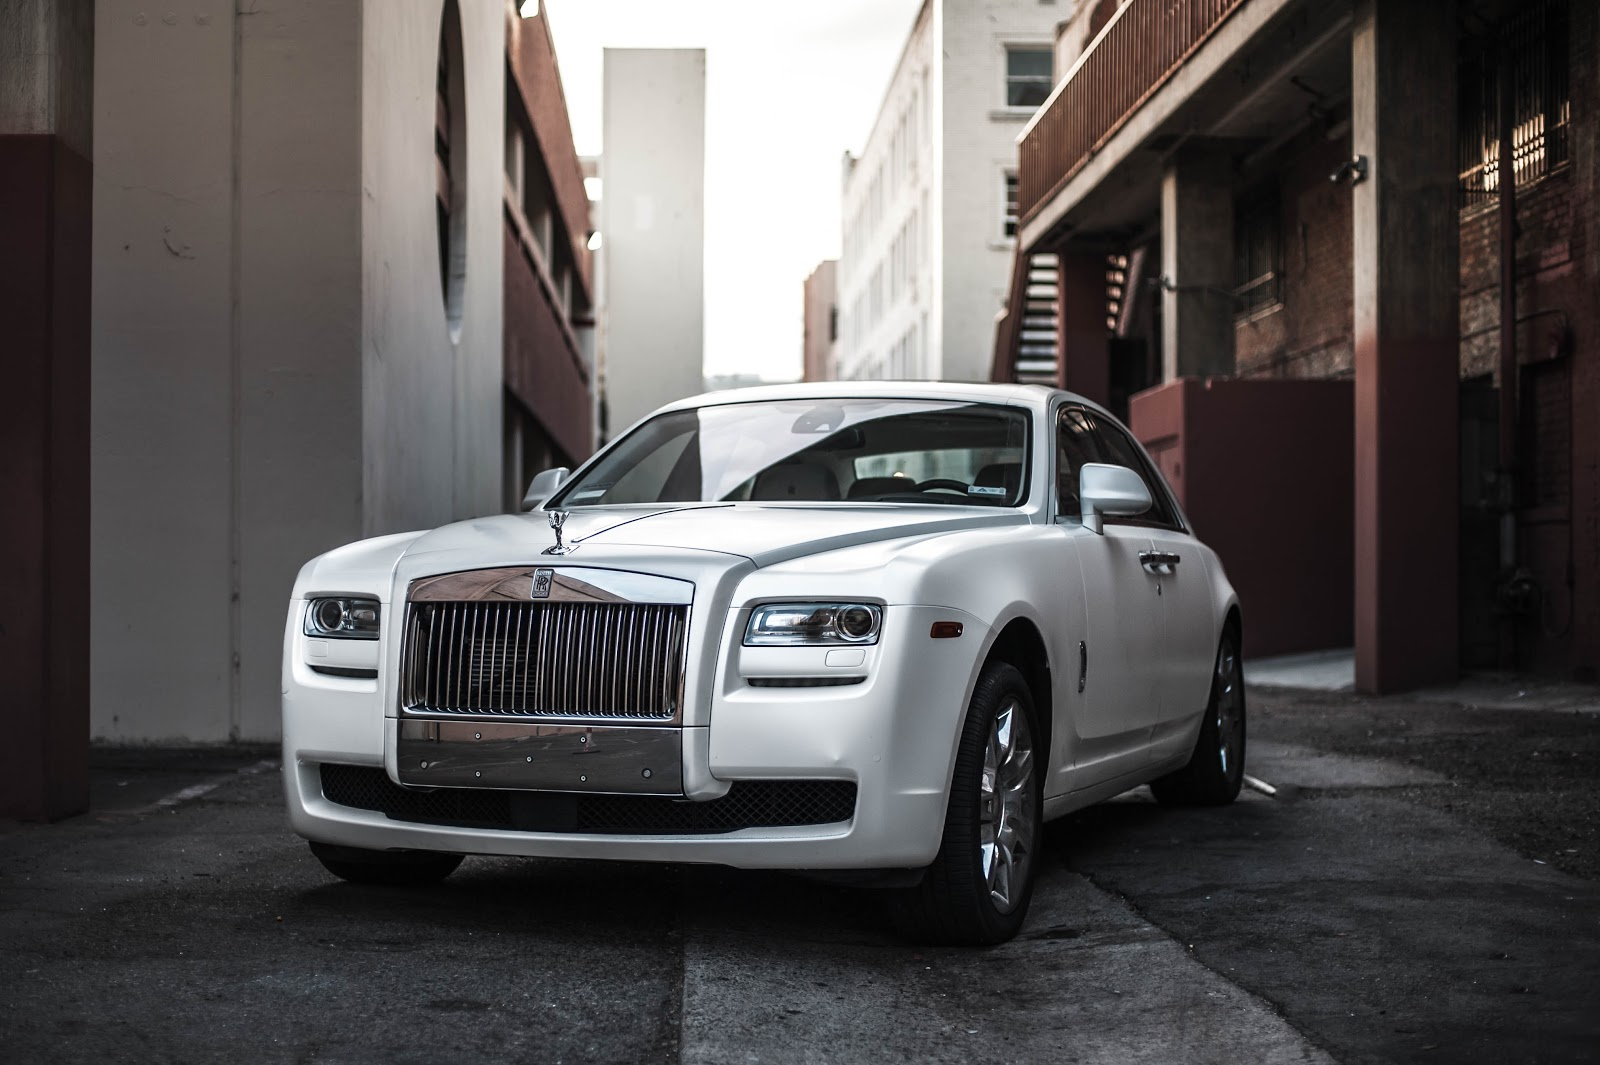 photo-of-white-rolls-royce-ghost-parked-in-an-alley-car-images